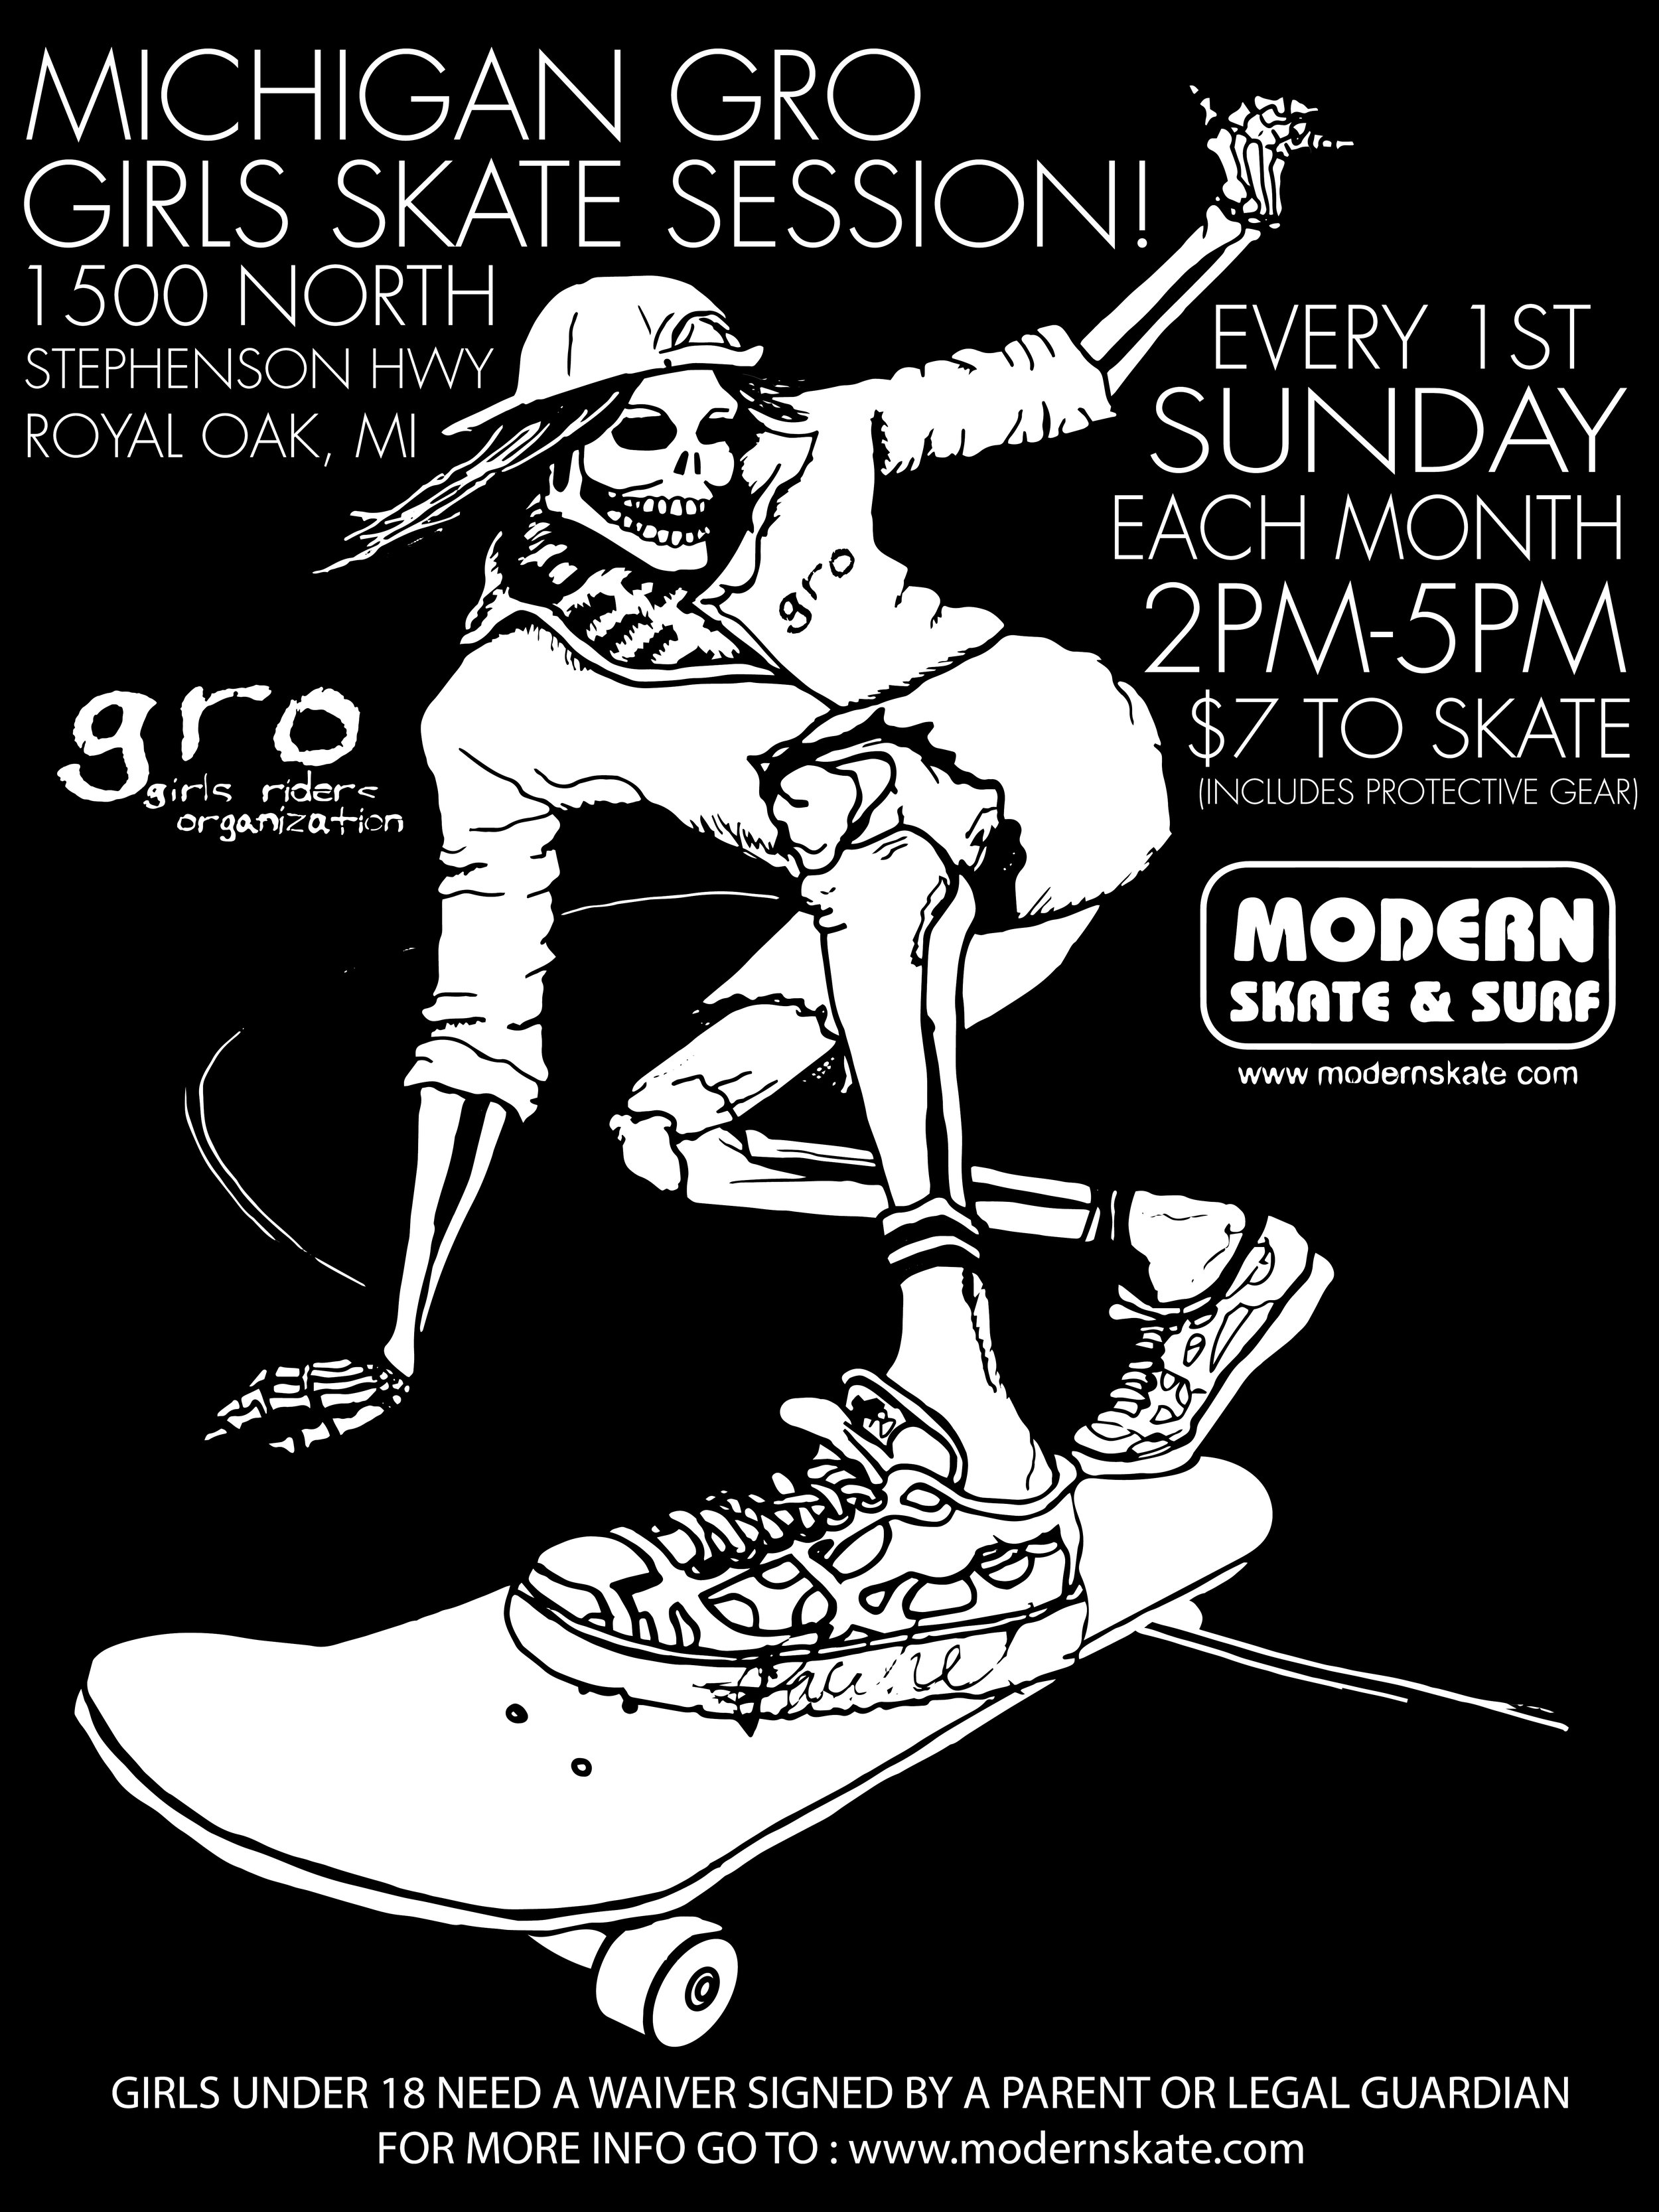 GRO_Skeleton_EVERY SUNDAY SKate_session_white on BLACK_KILL'N IT_FINAL-01.jpg